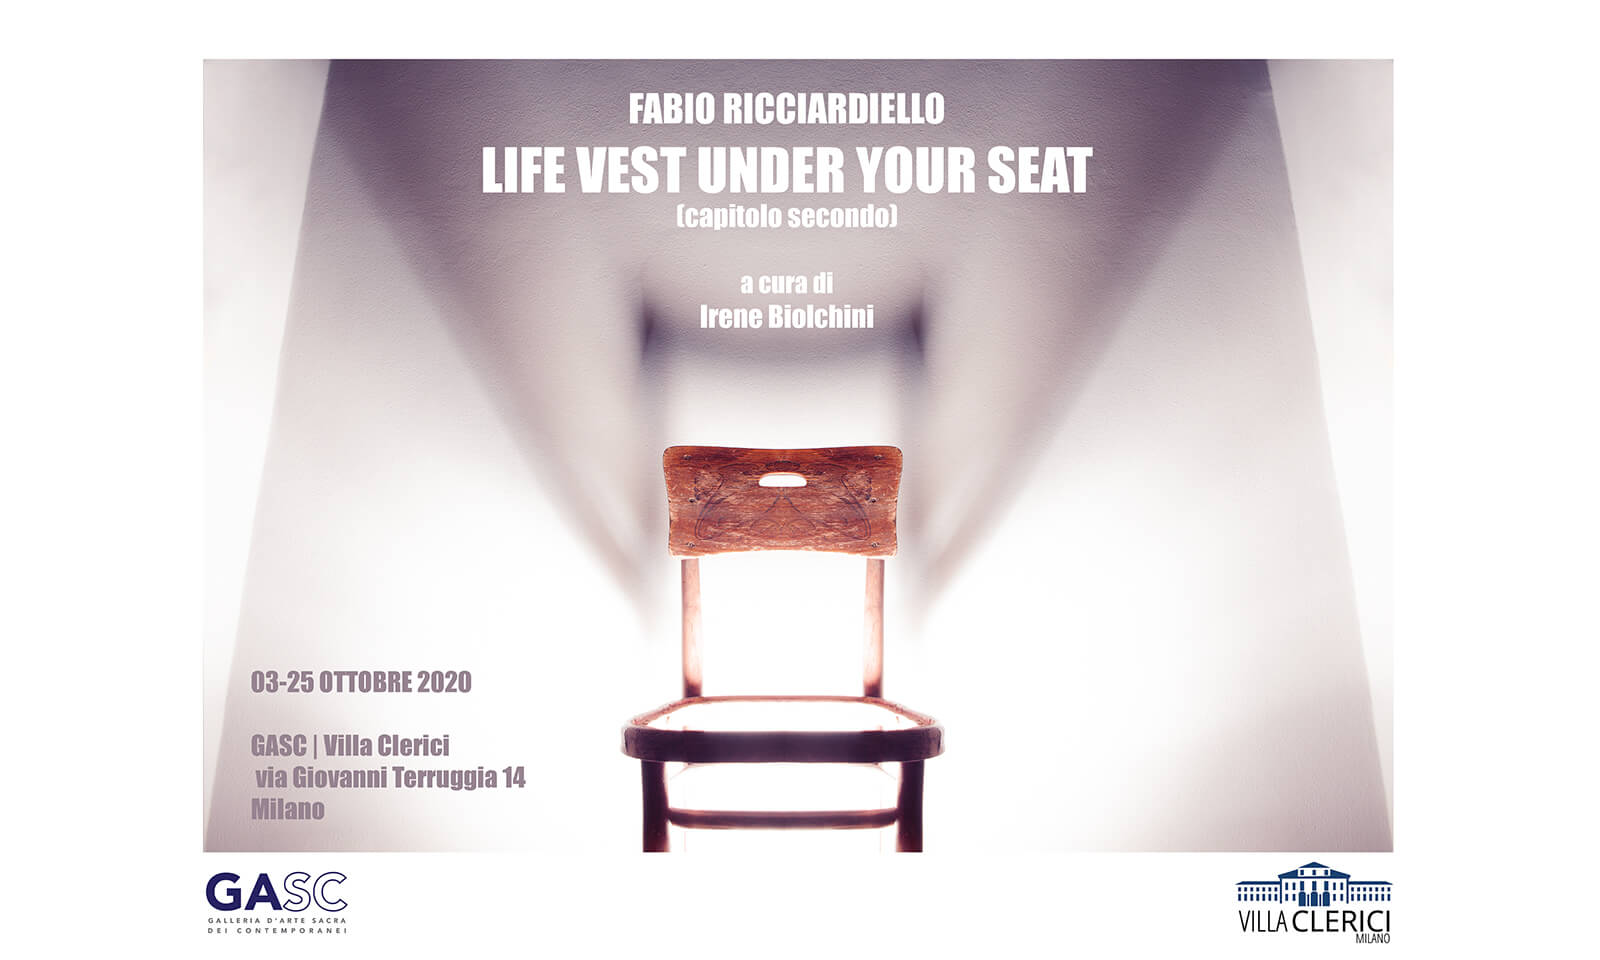 Welcome to Life Vest Under Your Seat (capitolo secondo)